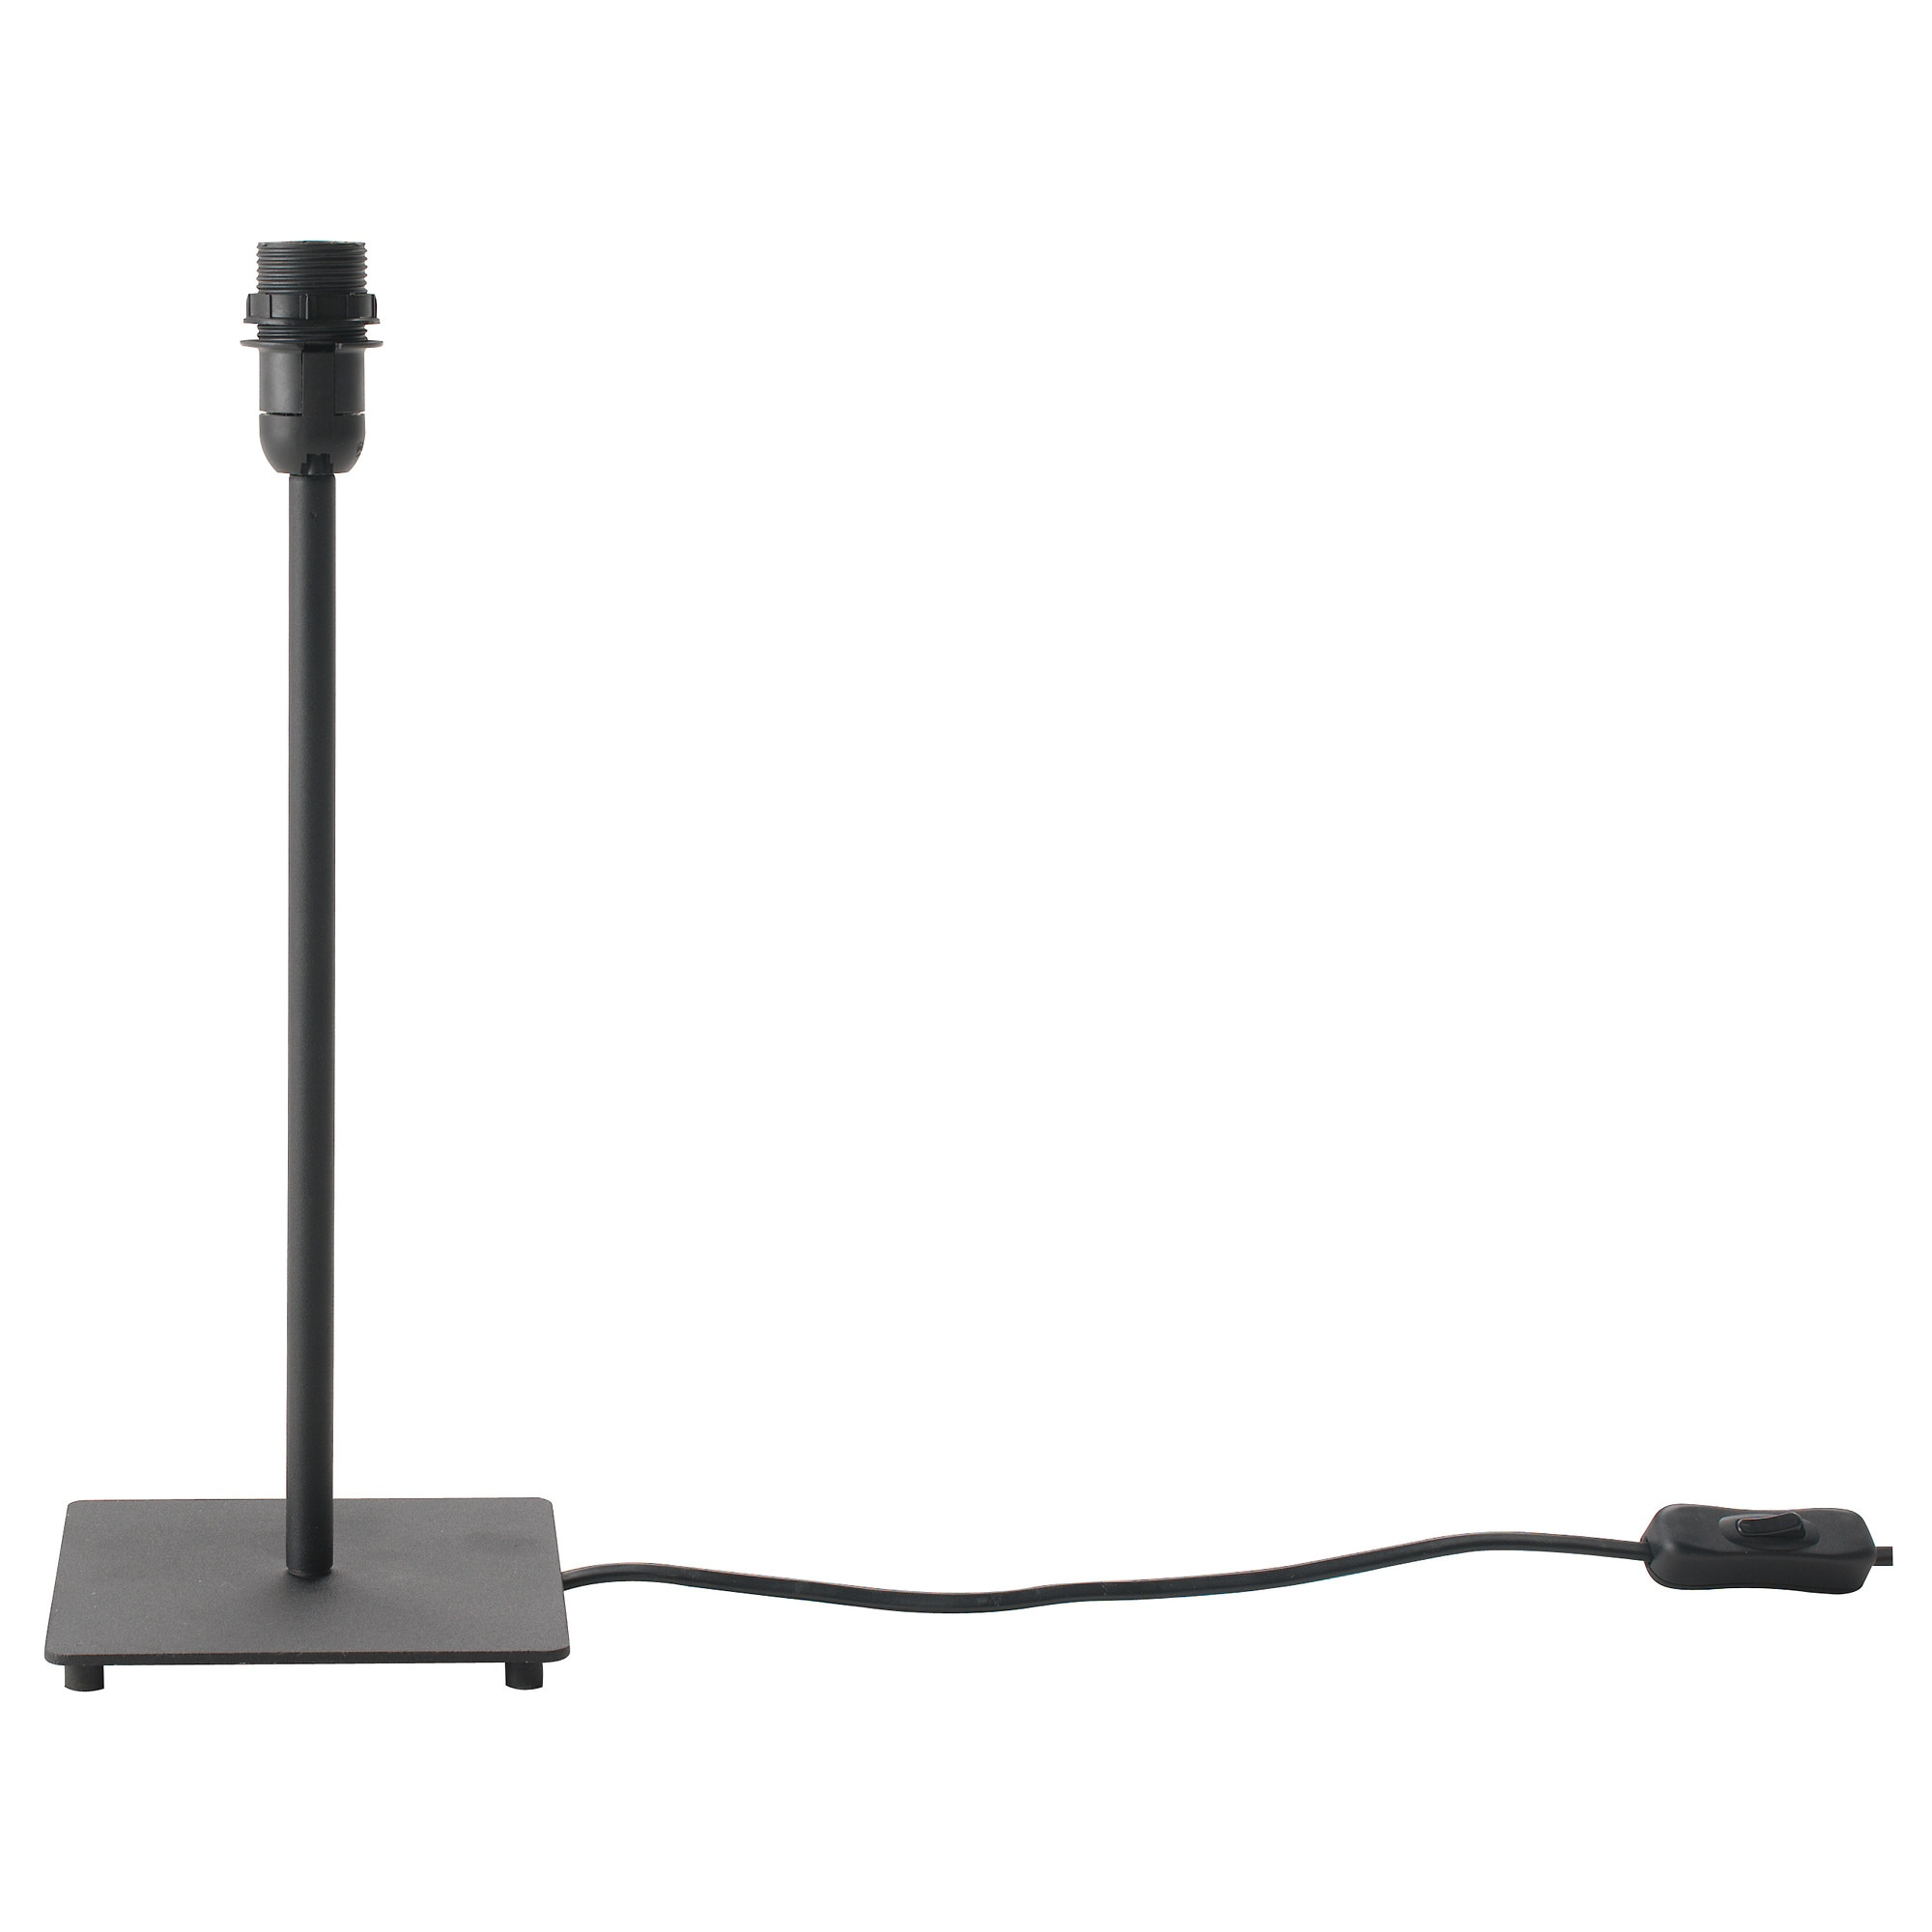 Table lamp height - Hemma Table Lamp Base With Led Bulb Black Height 14 Base Width